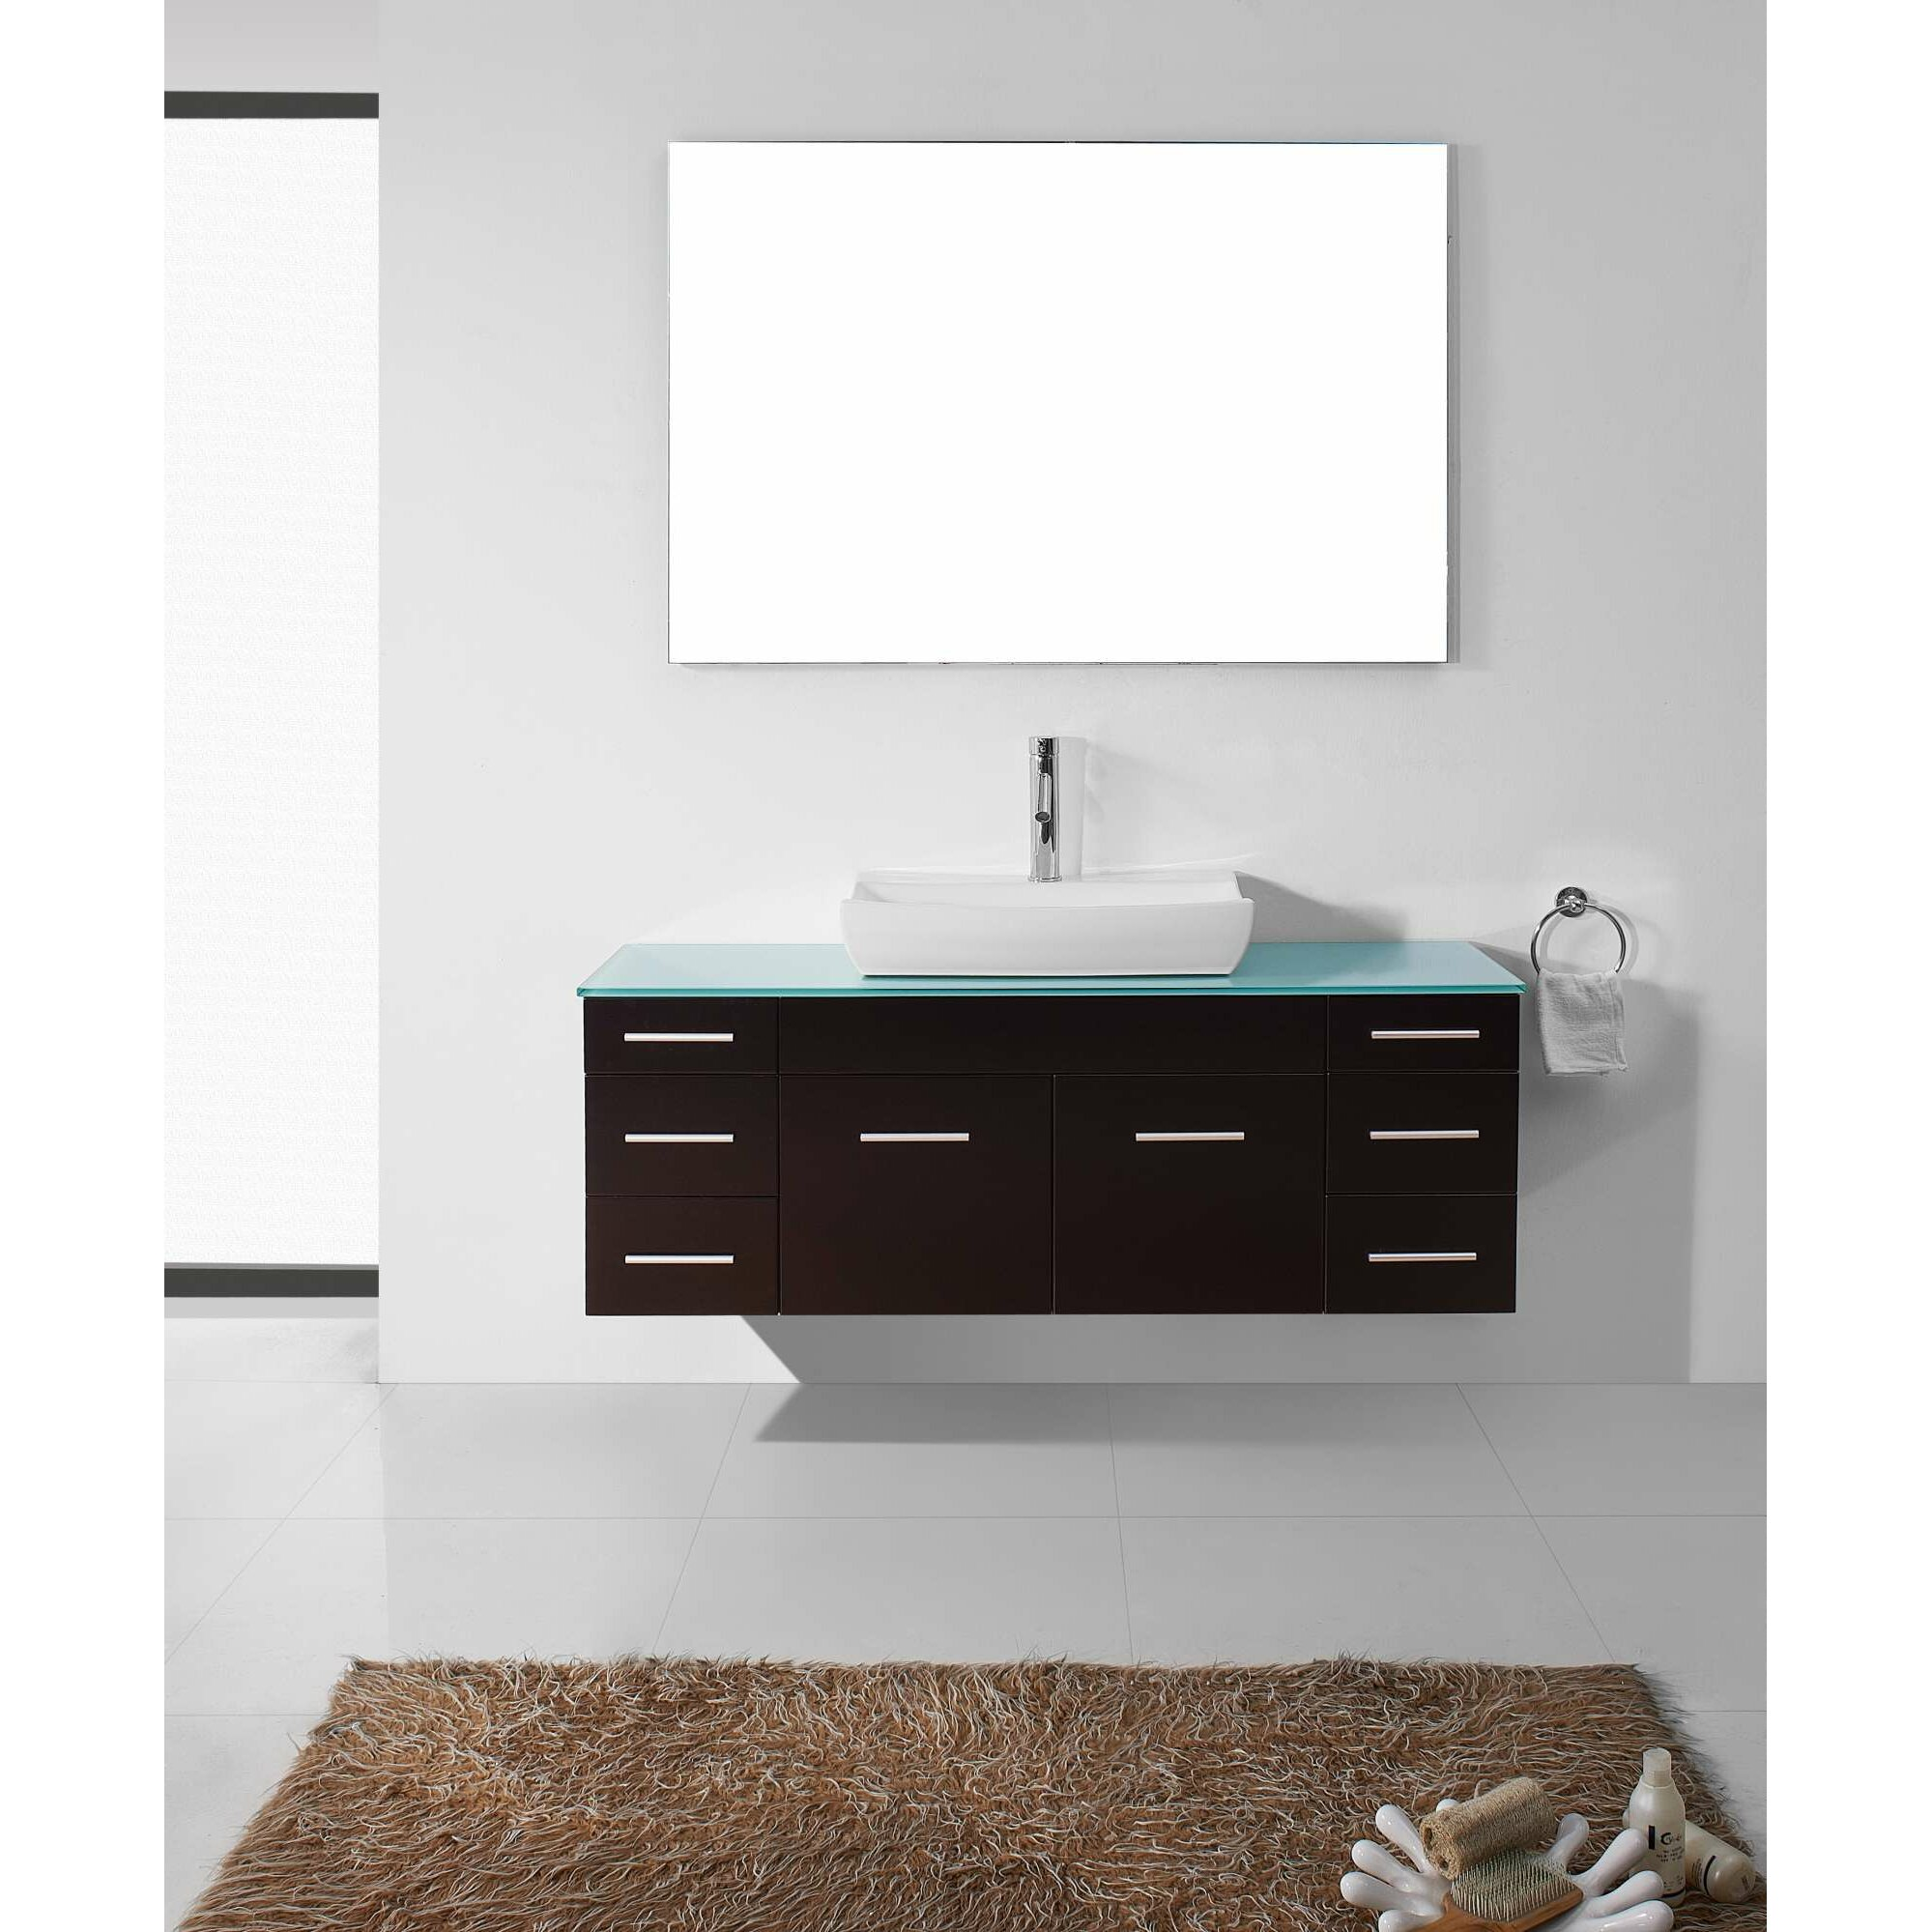 Virtu Biagio 56quot; Single Bathroom Vanity Set with Mirror amp; Reviews